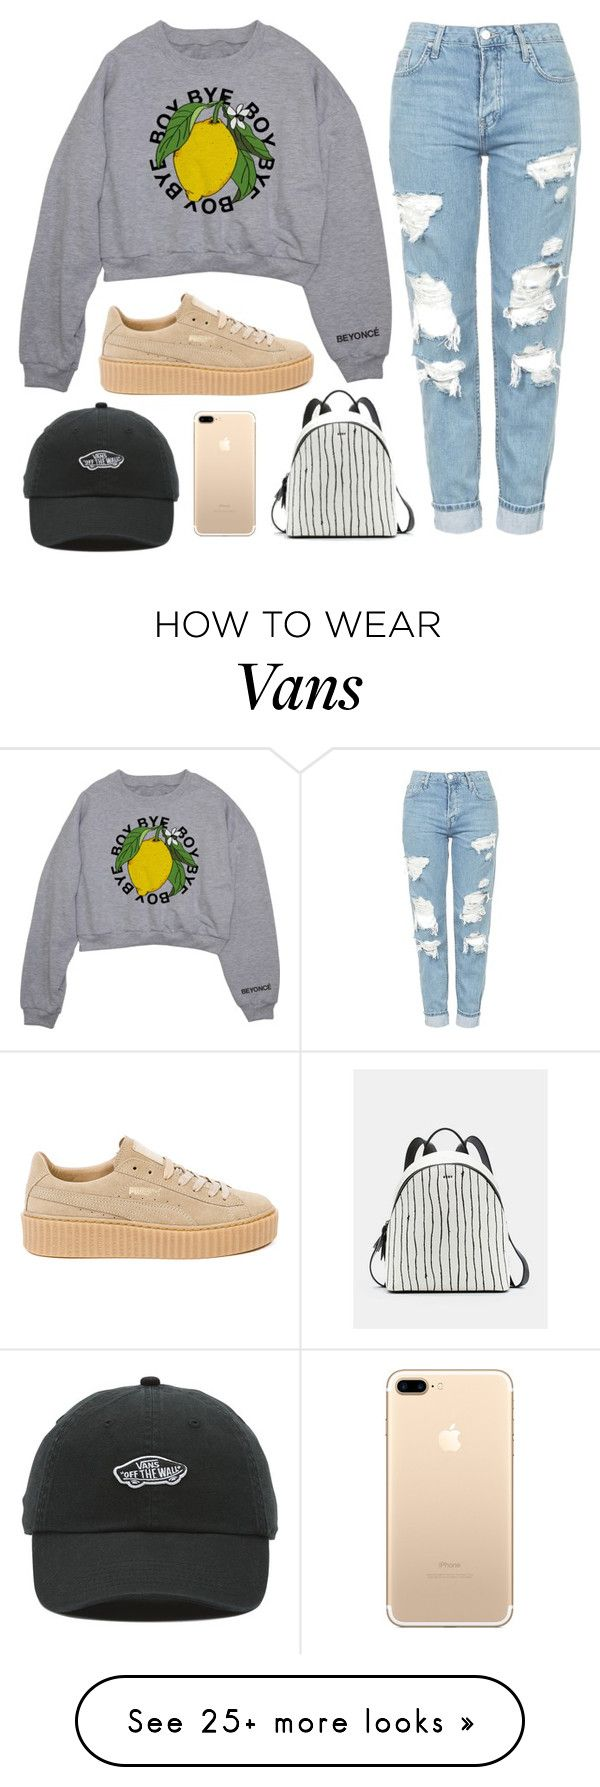 """""""Tell him boy bye"""" by tigerlily789 on Polyvore featuring Topshop, Puma, DKNY and Vans"""